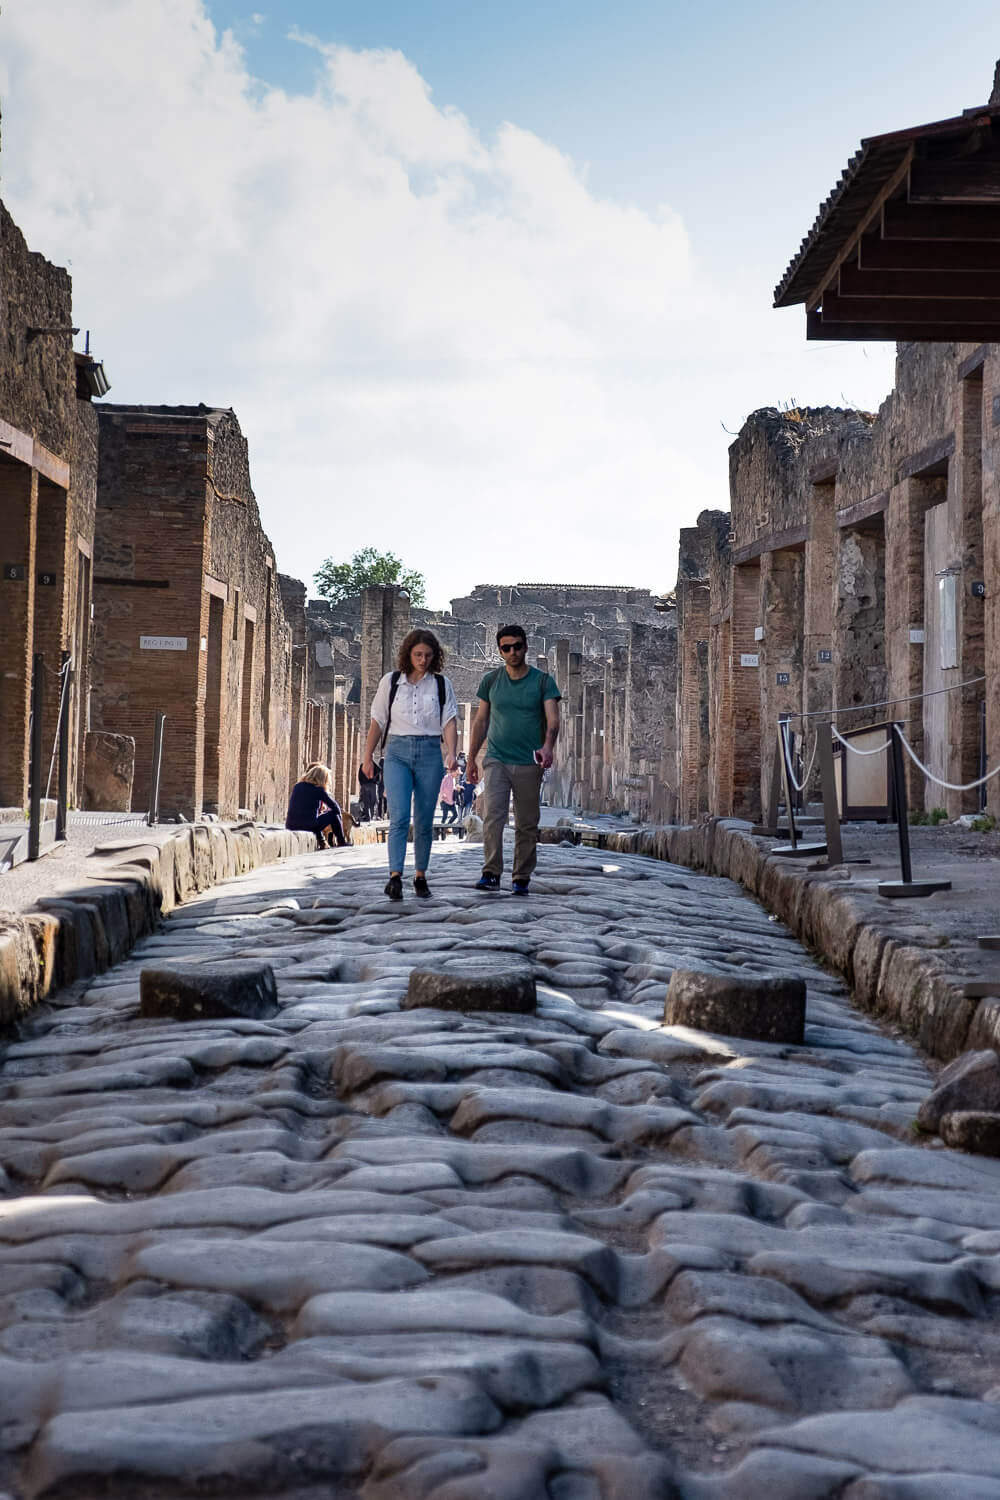 """A crosswalk in Pompeii. Travel photography and guide by © Natasha Lequepeys for """"And Then I Met Yoko"""". #pompeii #italy #fujifilm #travelphotography"""